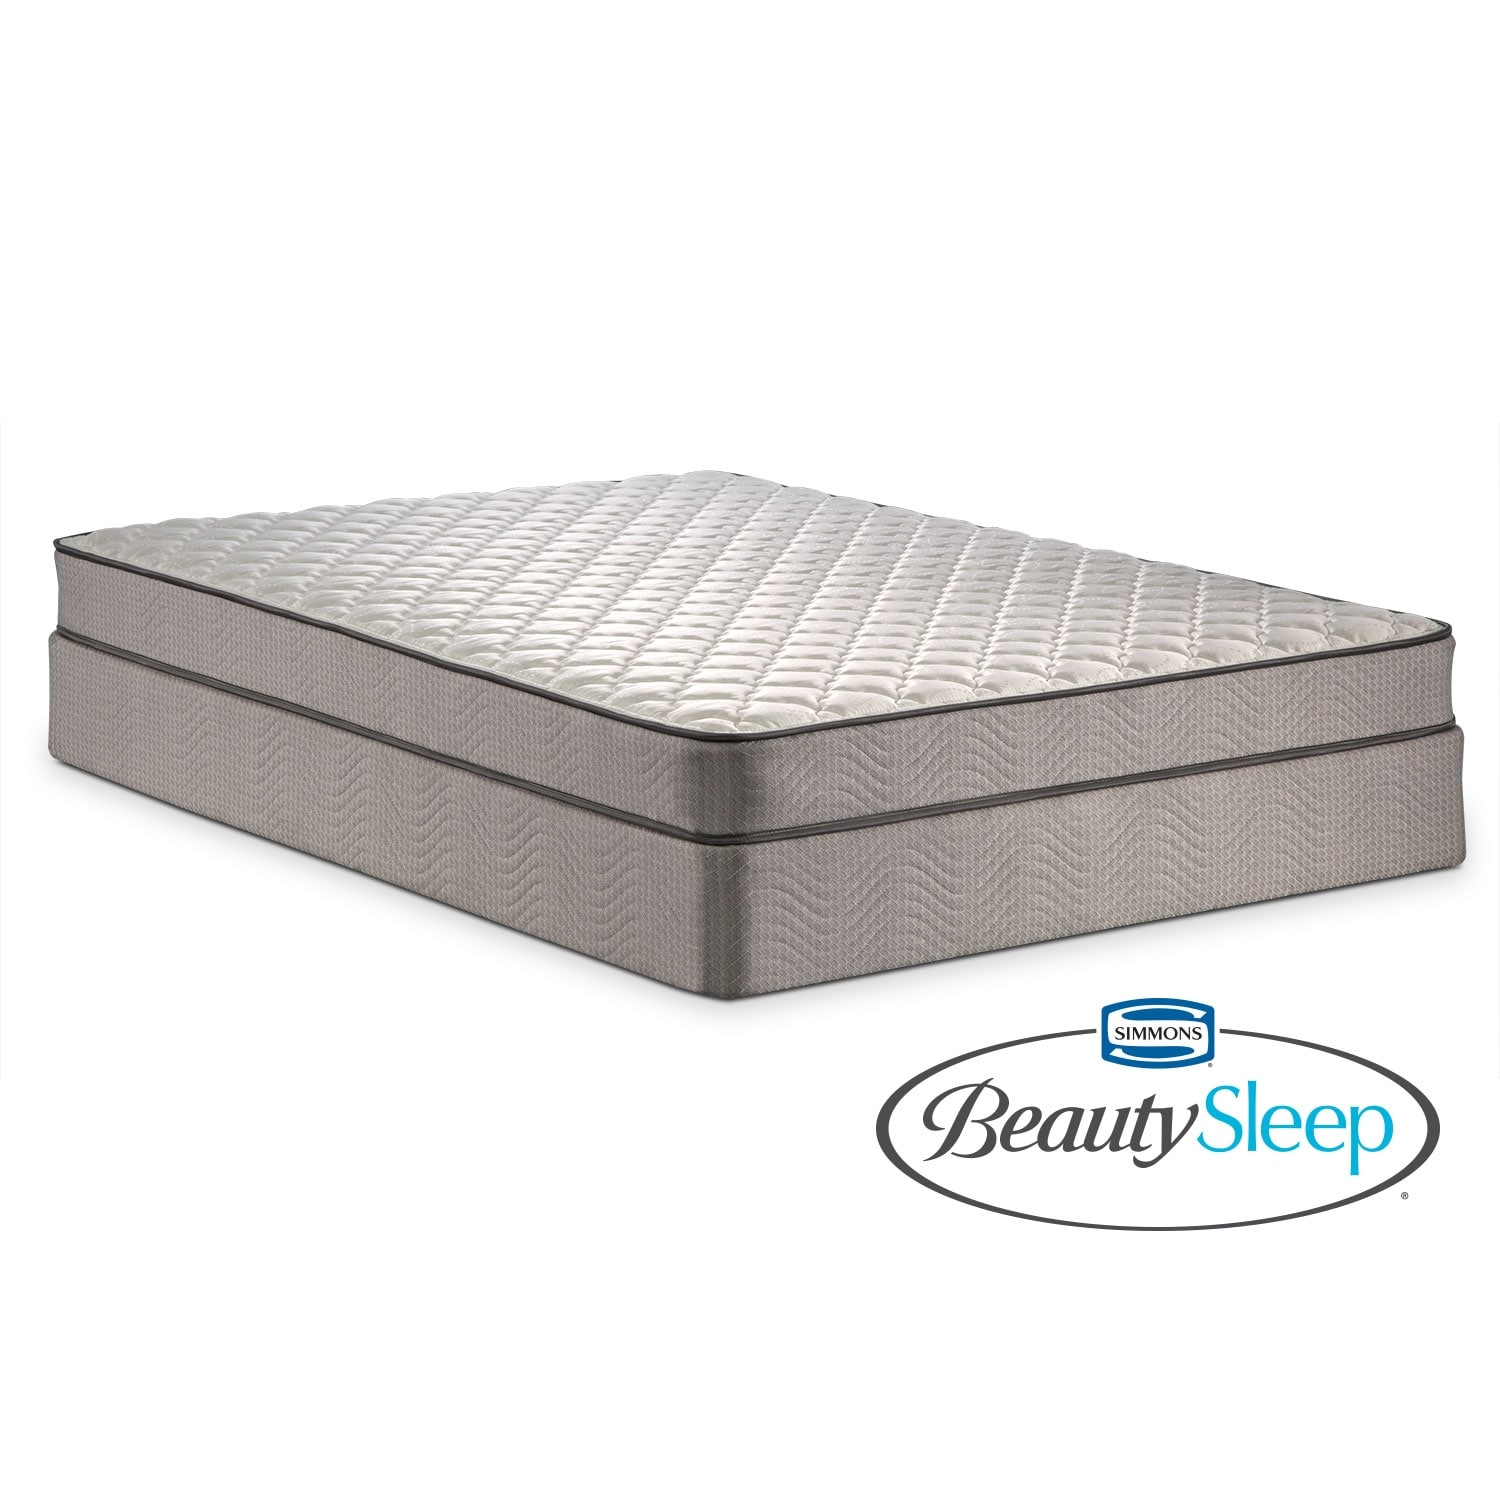 Mattresses and Bedding - Oakdale Queen Mattress/Low-Profile Foundation Set